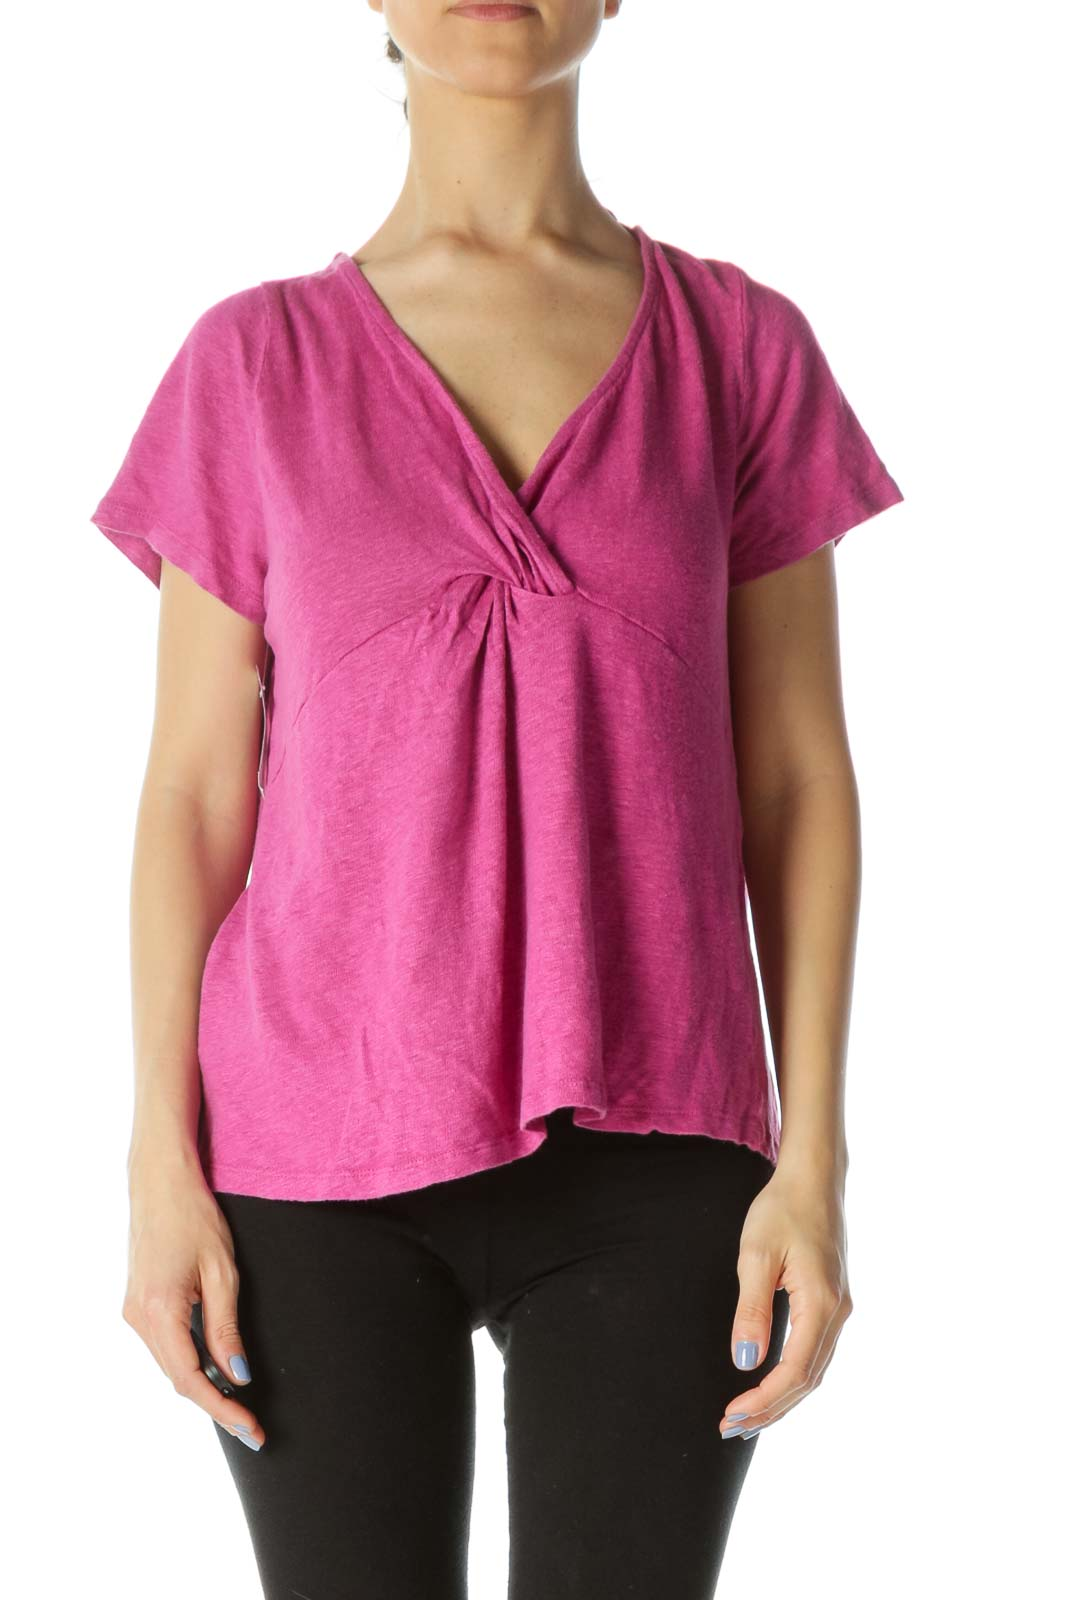 Magenta Pink 100% Linen Short-Sleeve Knot Detail Knit Top Front